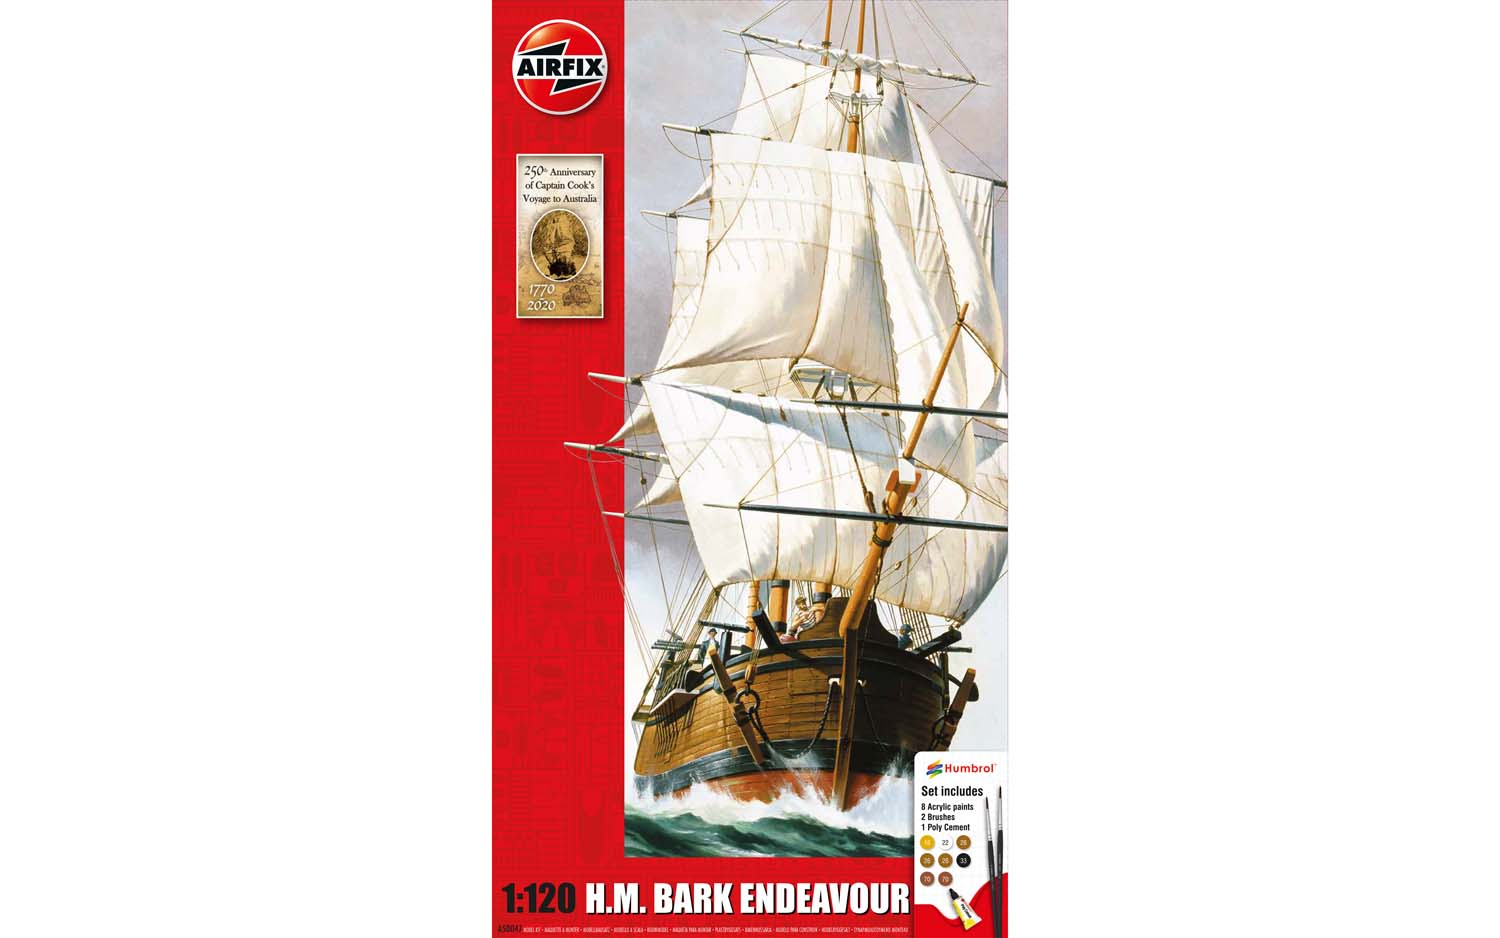 Endeavour Bark and Captain Cook 250th Anniversary - 1:120